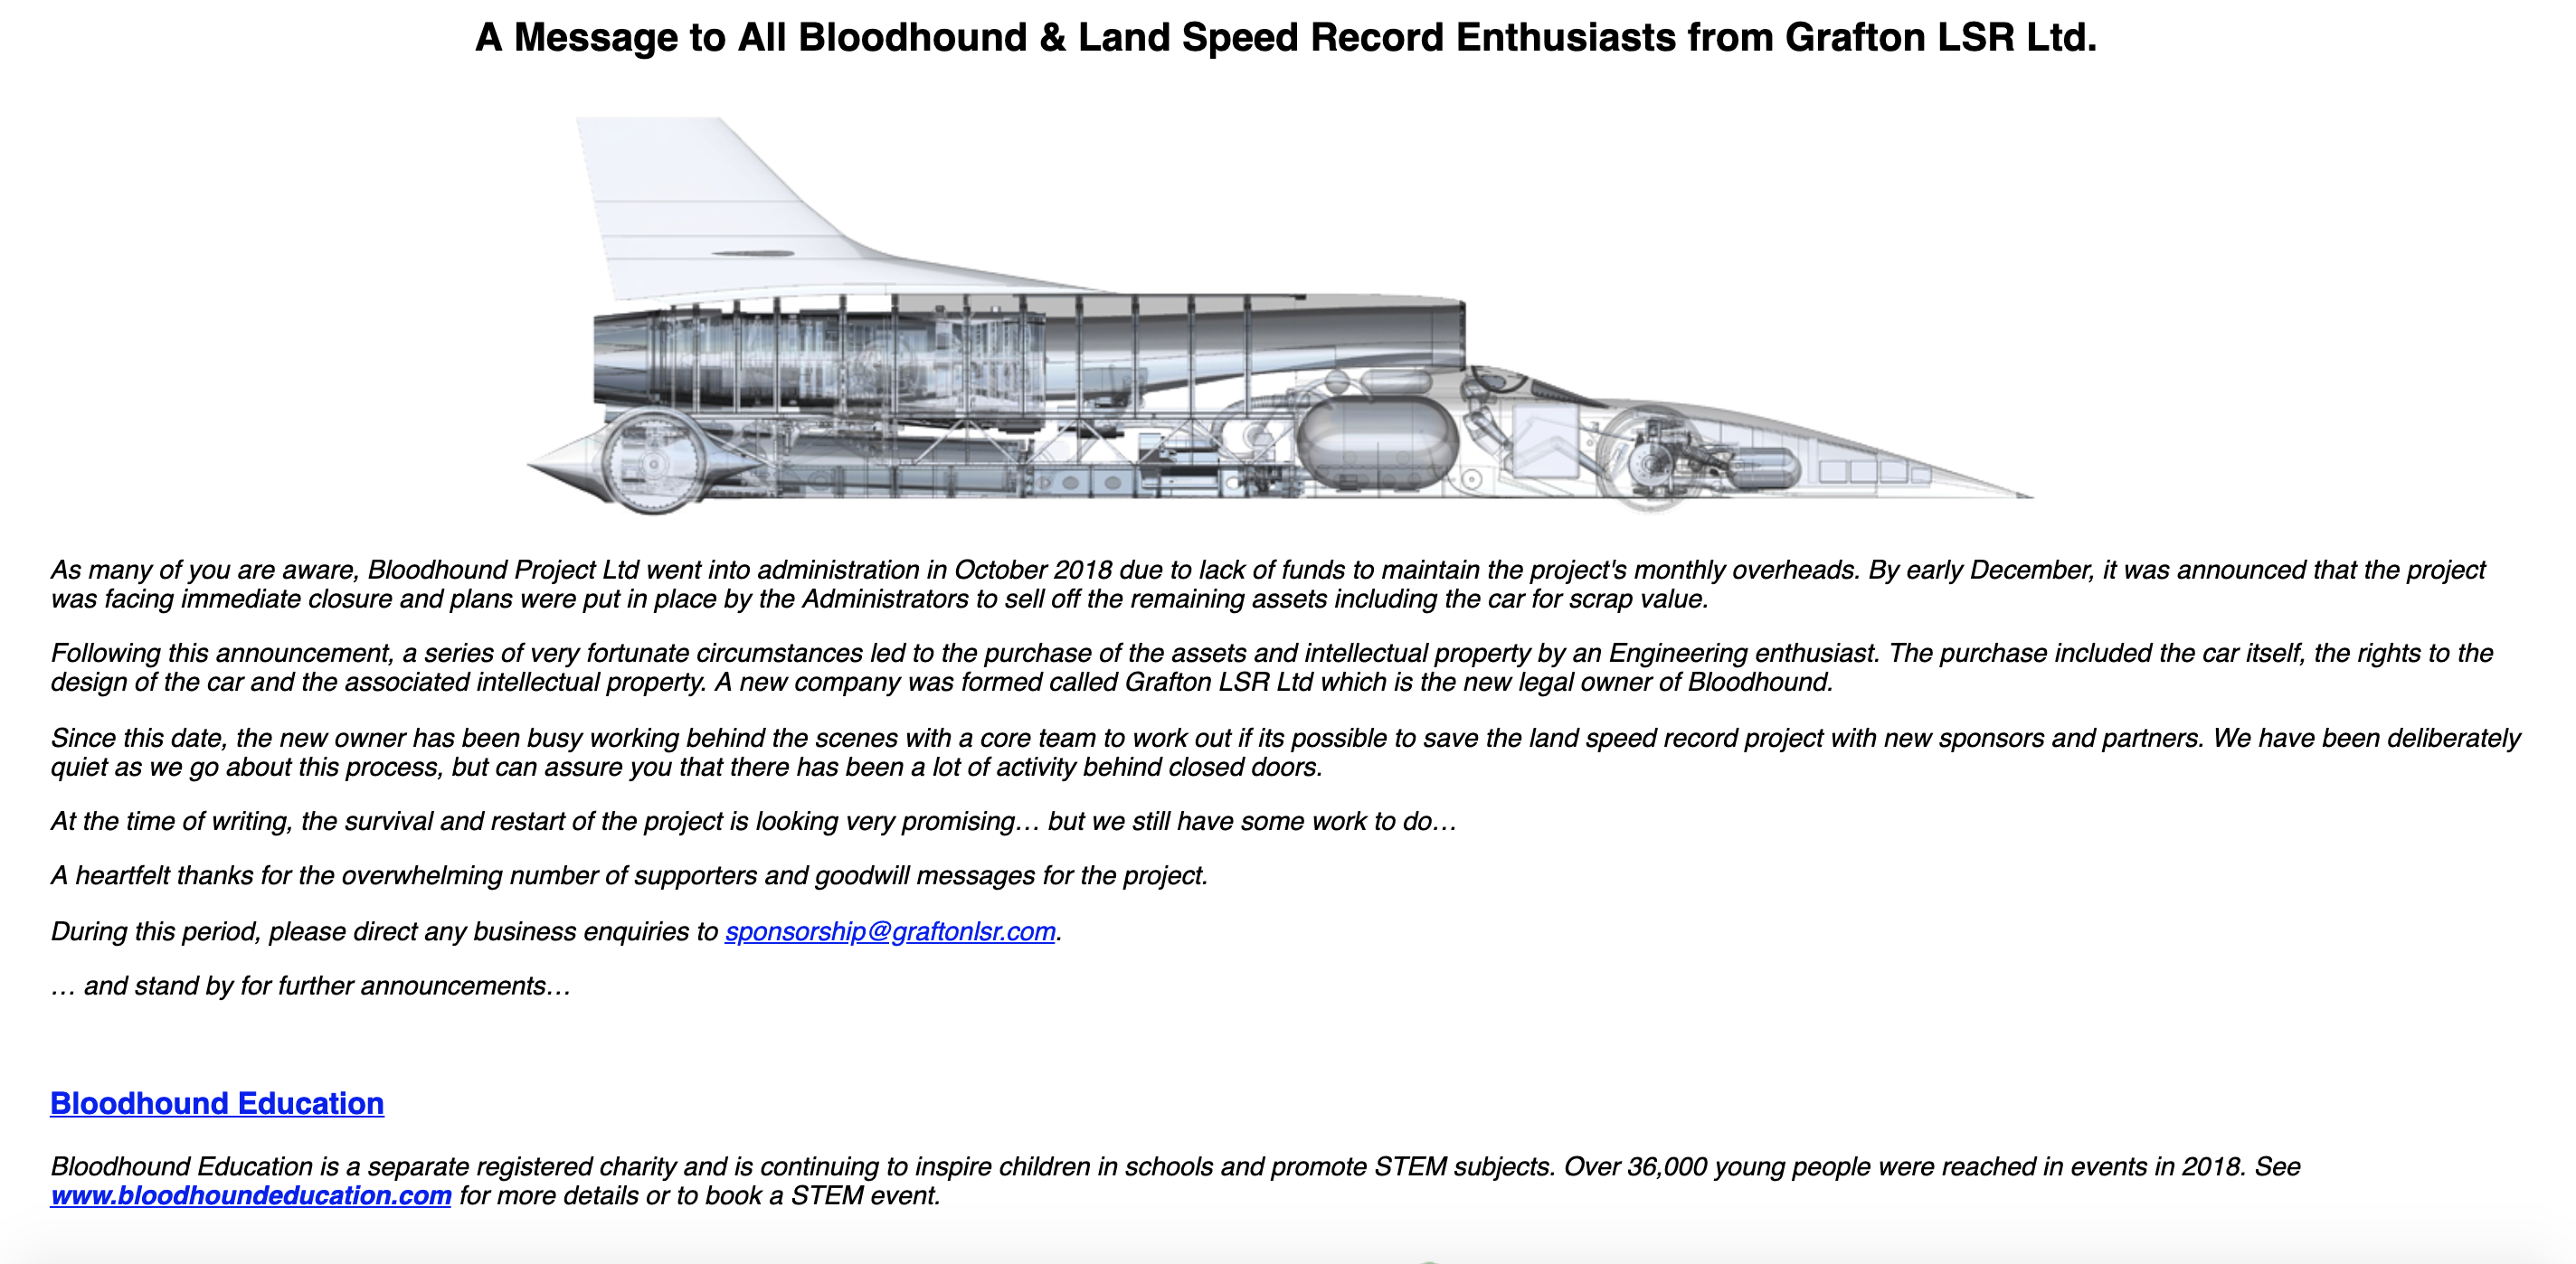 The Bloodhound Supersonic Car Project Is Back On and Going for the